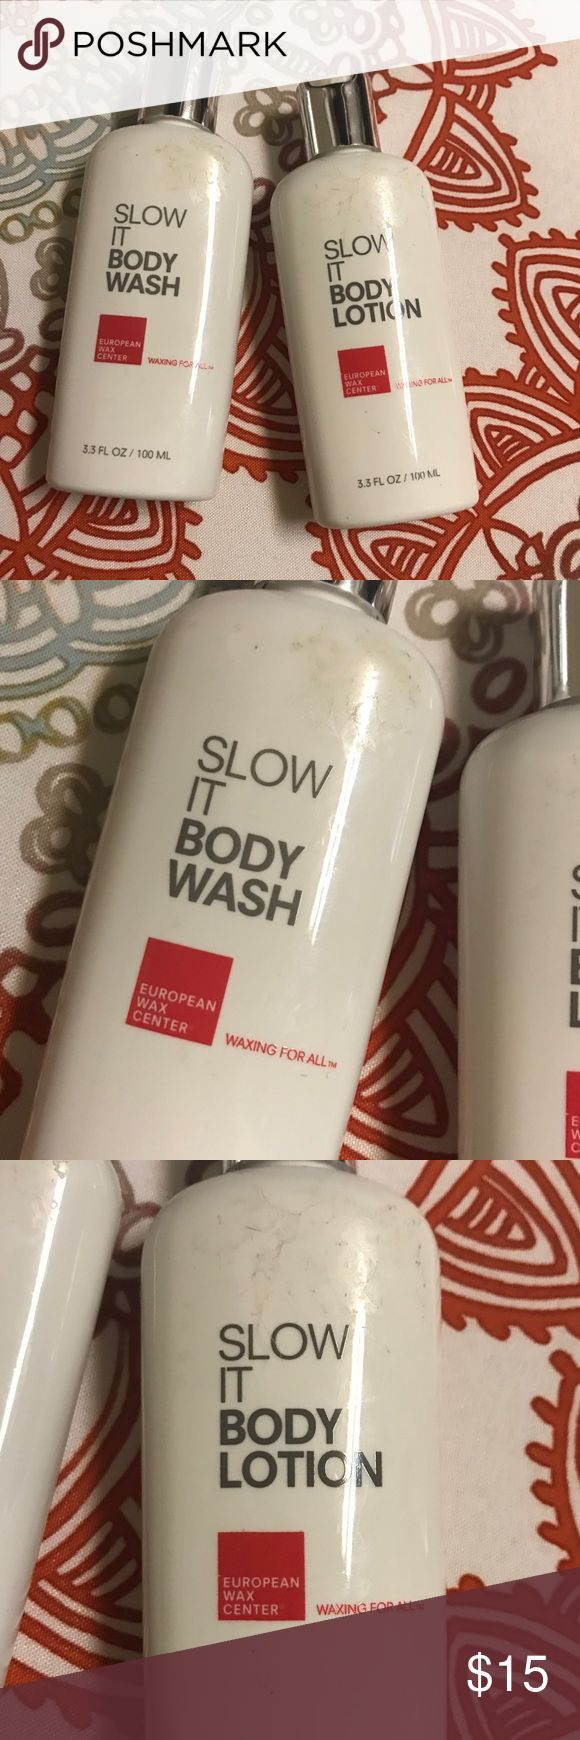 Slow It Body Lotion and Wash New European Wax Center Wash and Lotion. 3.3 Fl oz European Wax Center Makeup